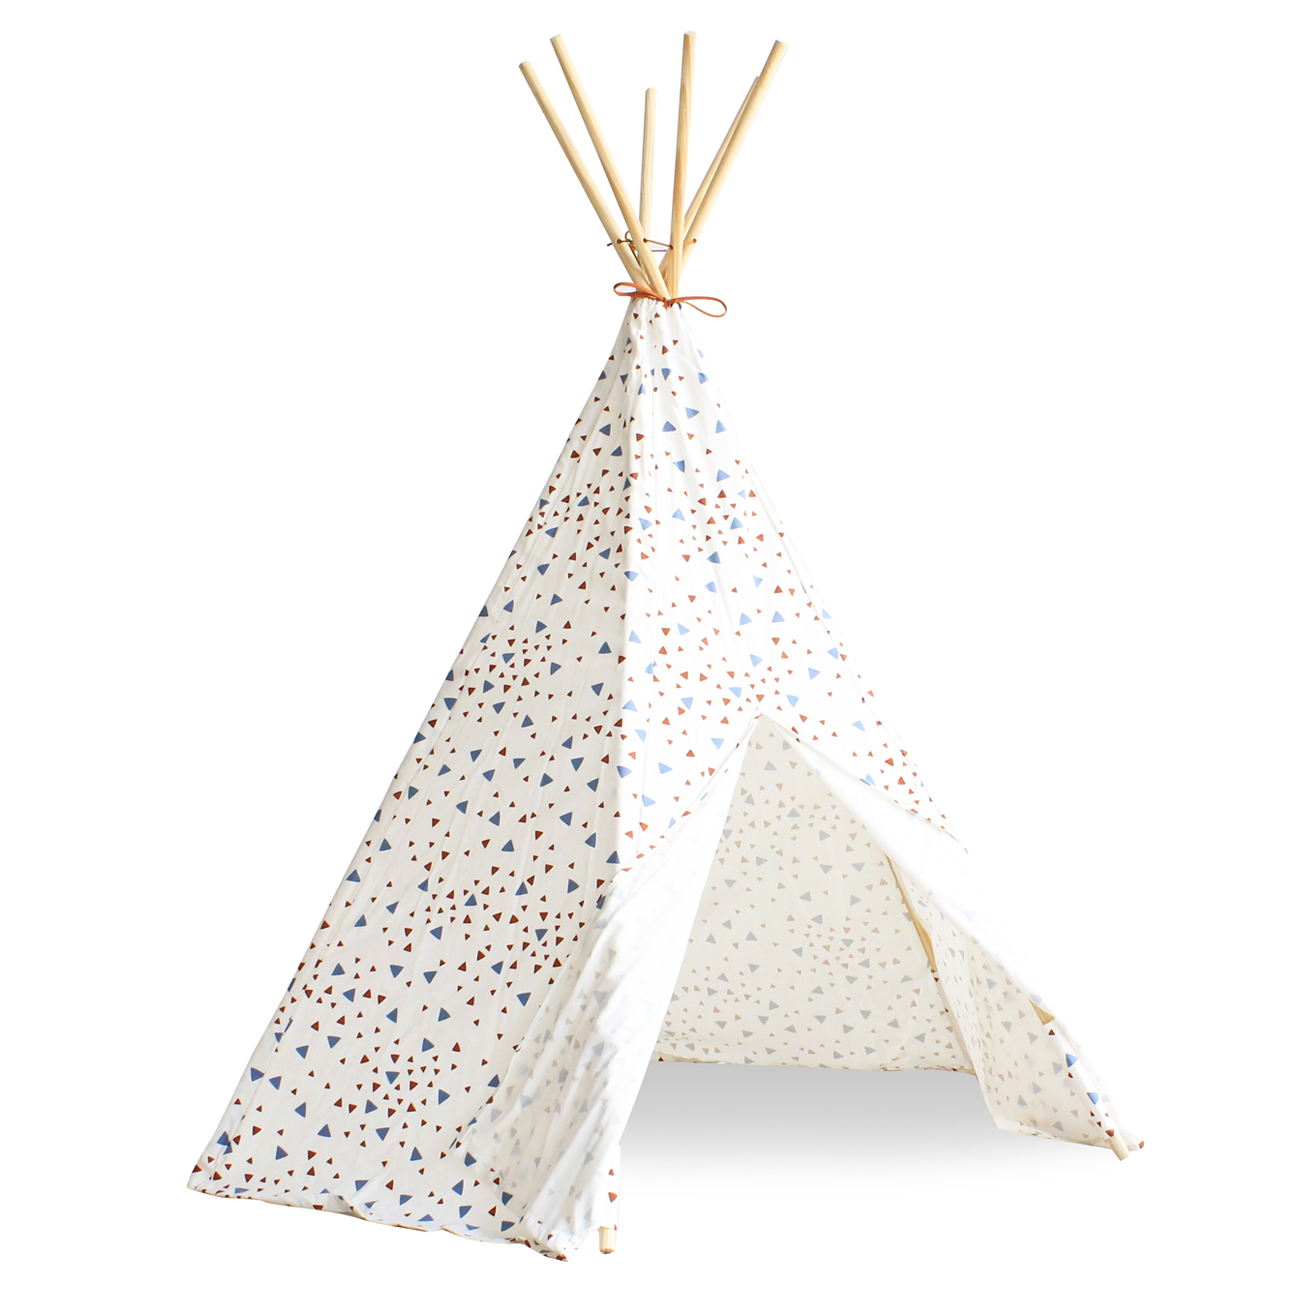 tipi arizona eclairs bleu rouge orient nobodinoz pour chambre enfant les enfants du design. Black Bedroom Furniture Sets. Home Design Ideas